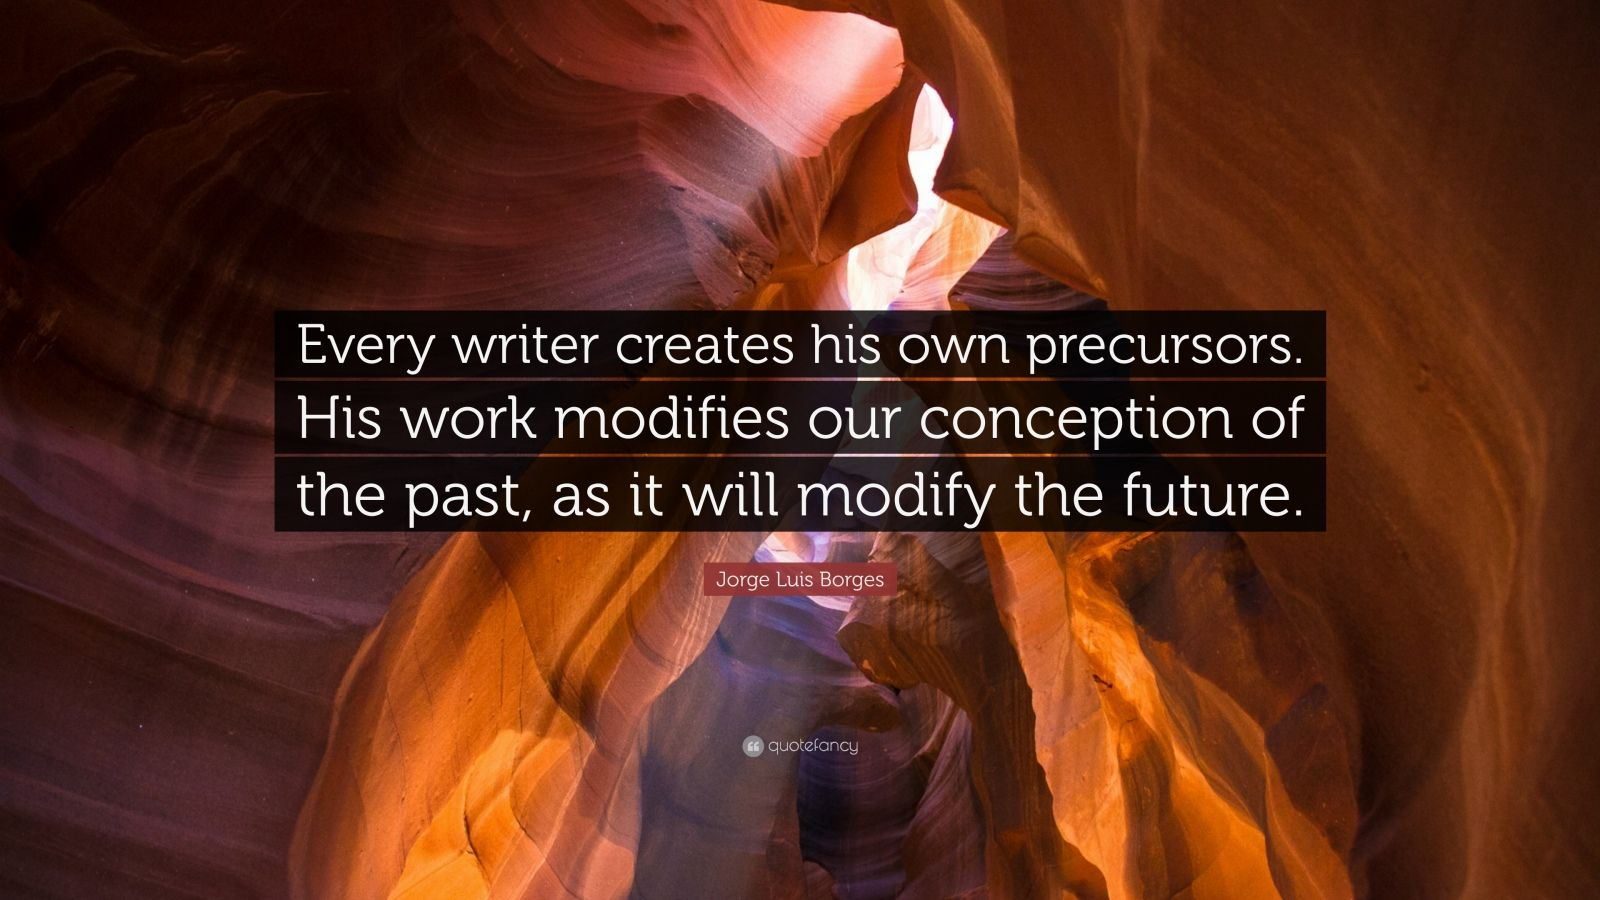 """Jorge Luis Borges Quote: """"Every writer creates his own precursors. His work modifies our conception of the past, as it will modify the future."""""""